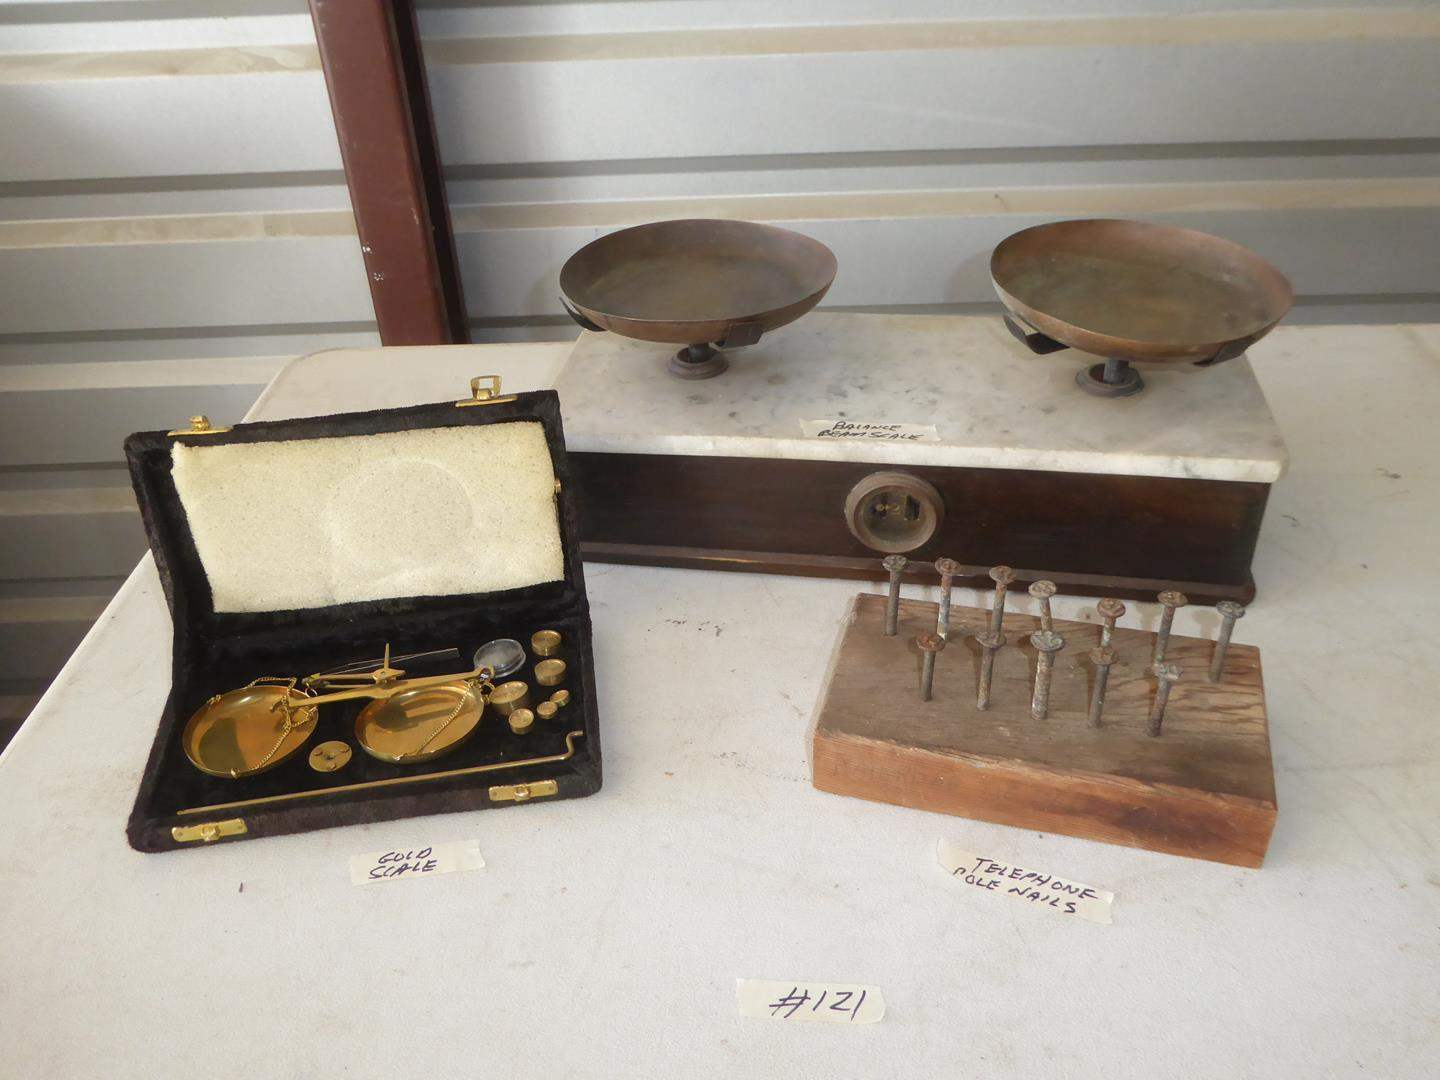 Lot # 121 - Vintage Gold Scale, Telephone Pole Nails & Balance Scale (main image)